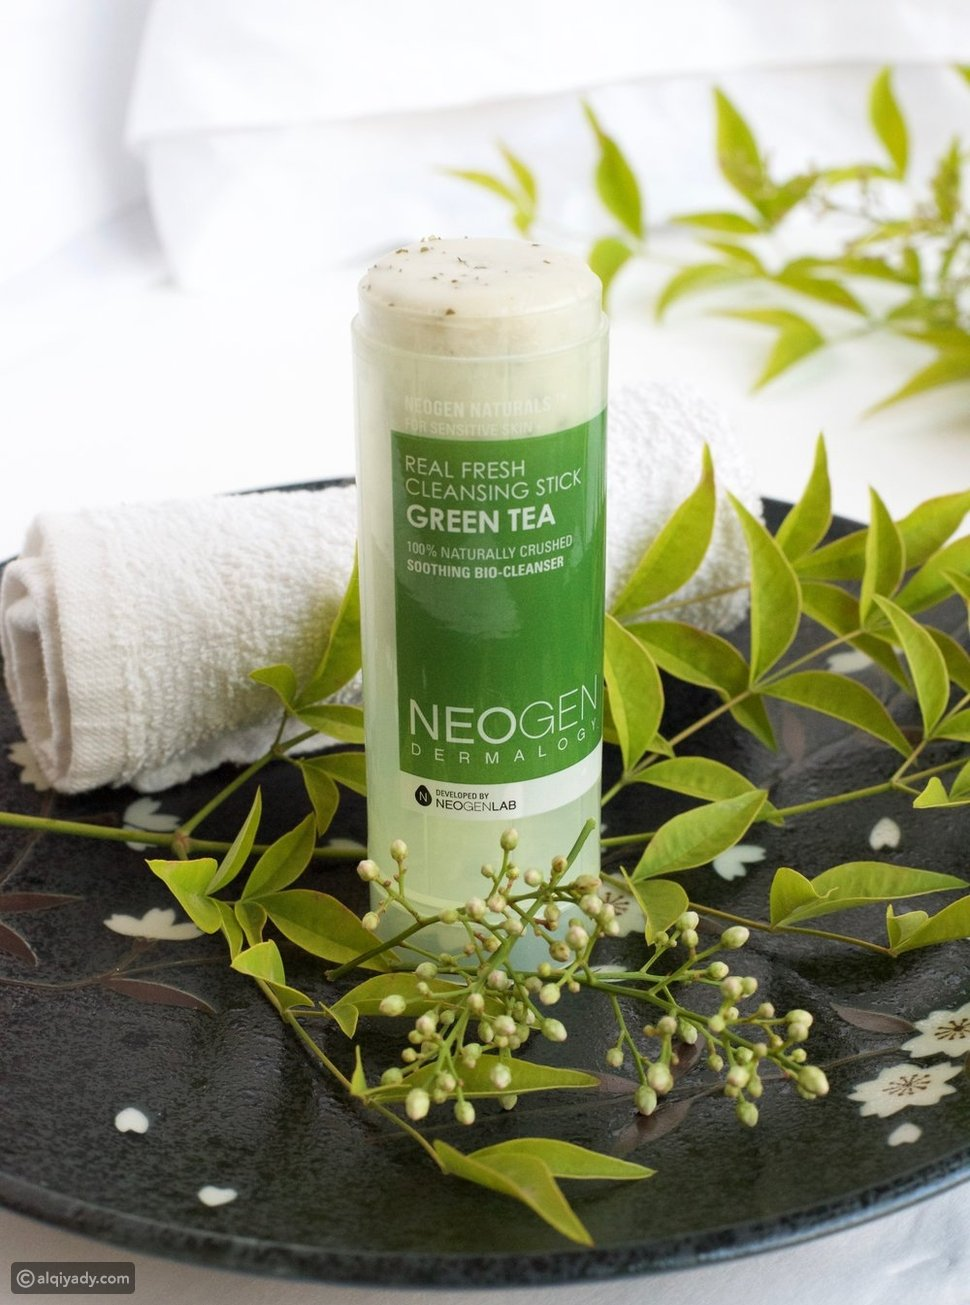 Neogen Naturals Real Fresh Cleansing Stick with Green Tea